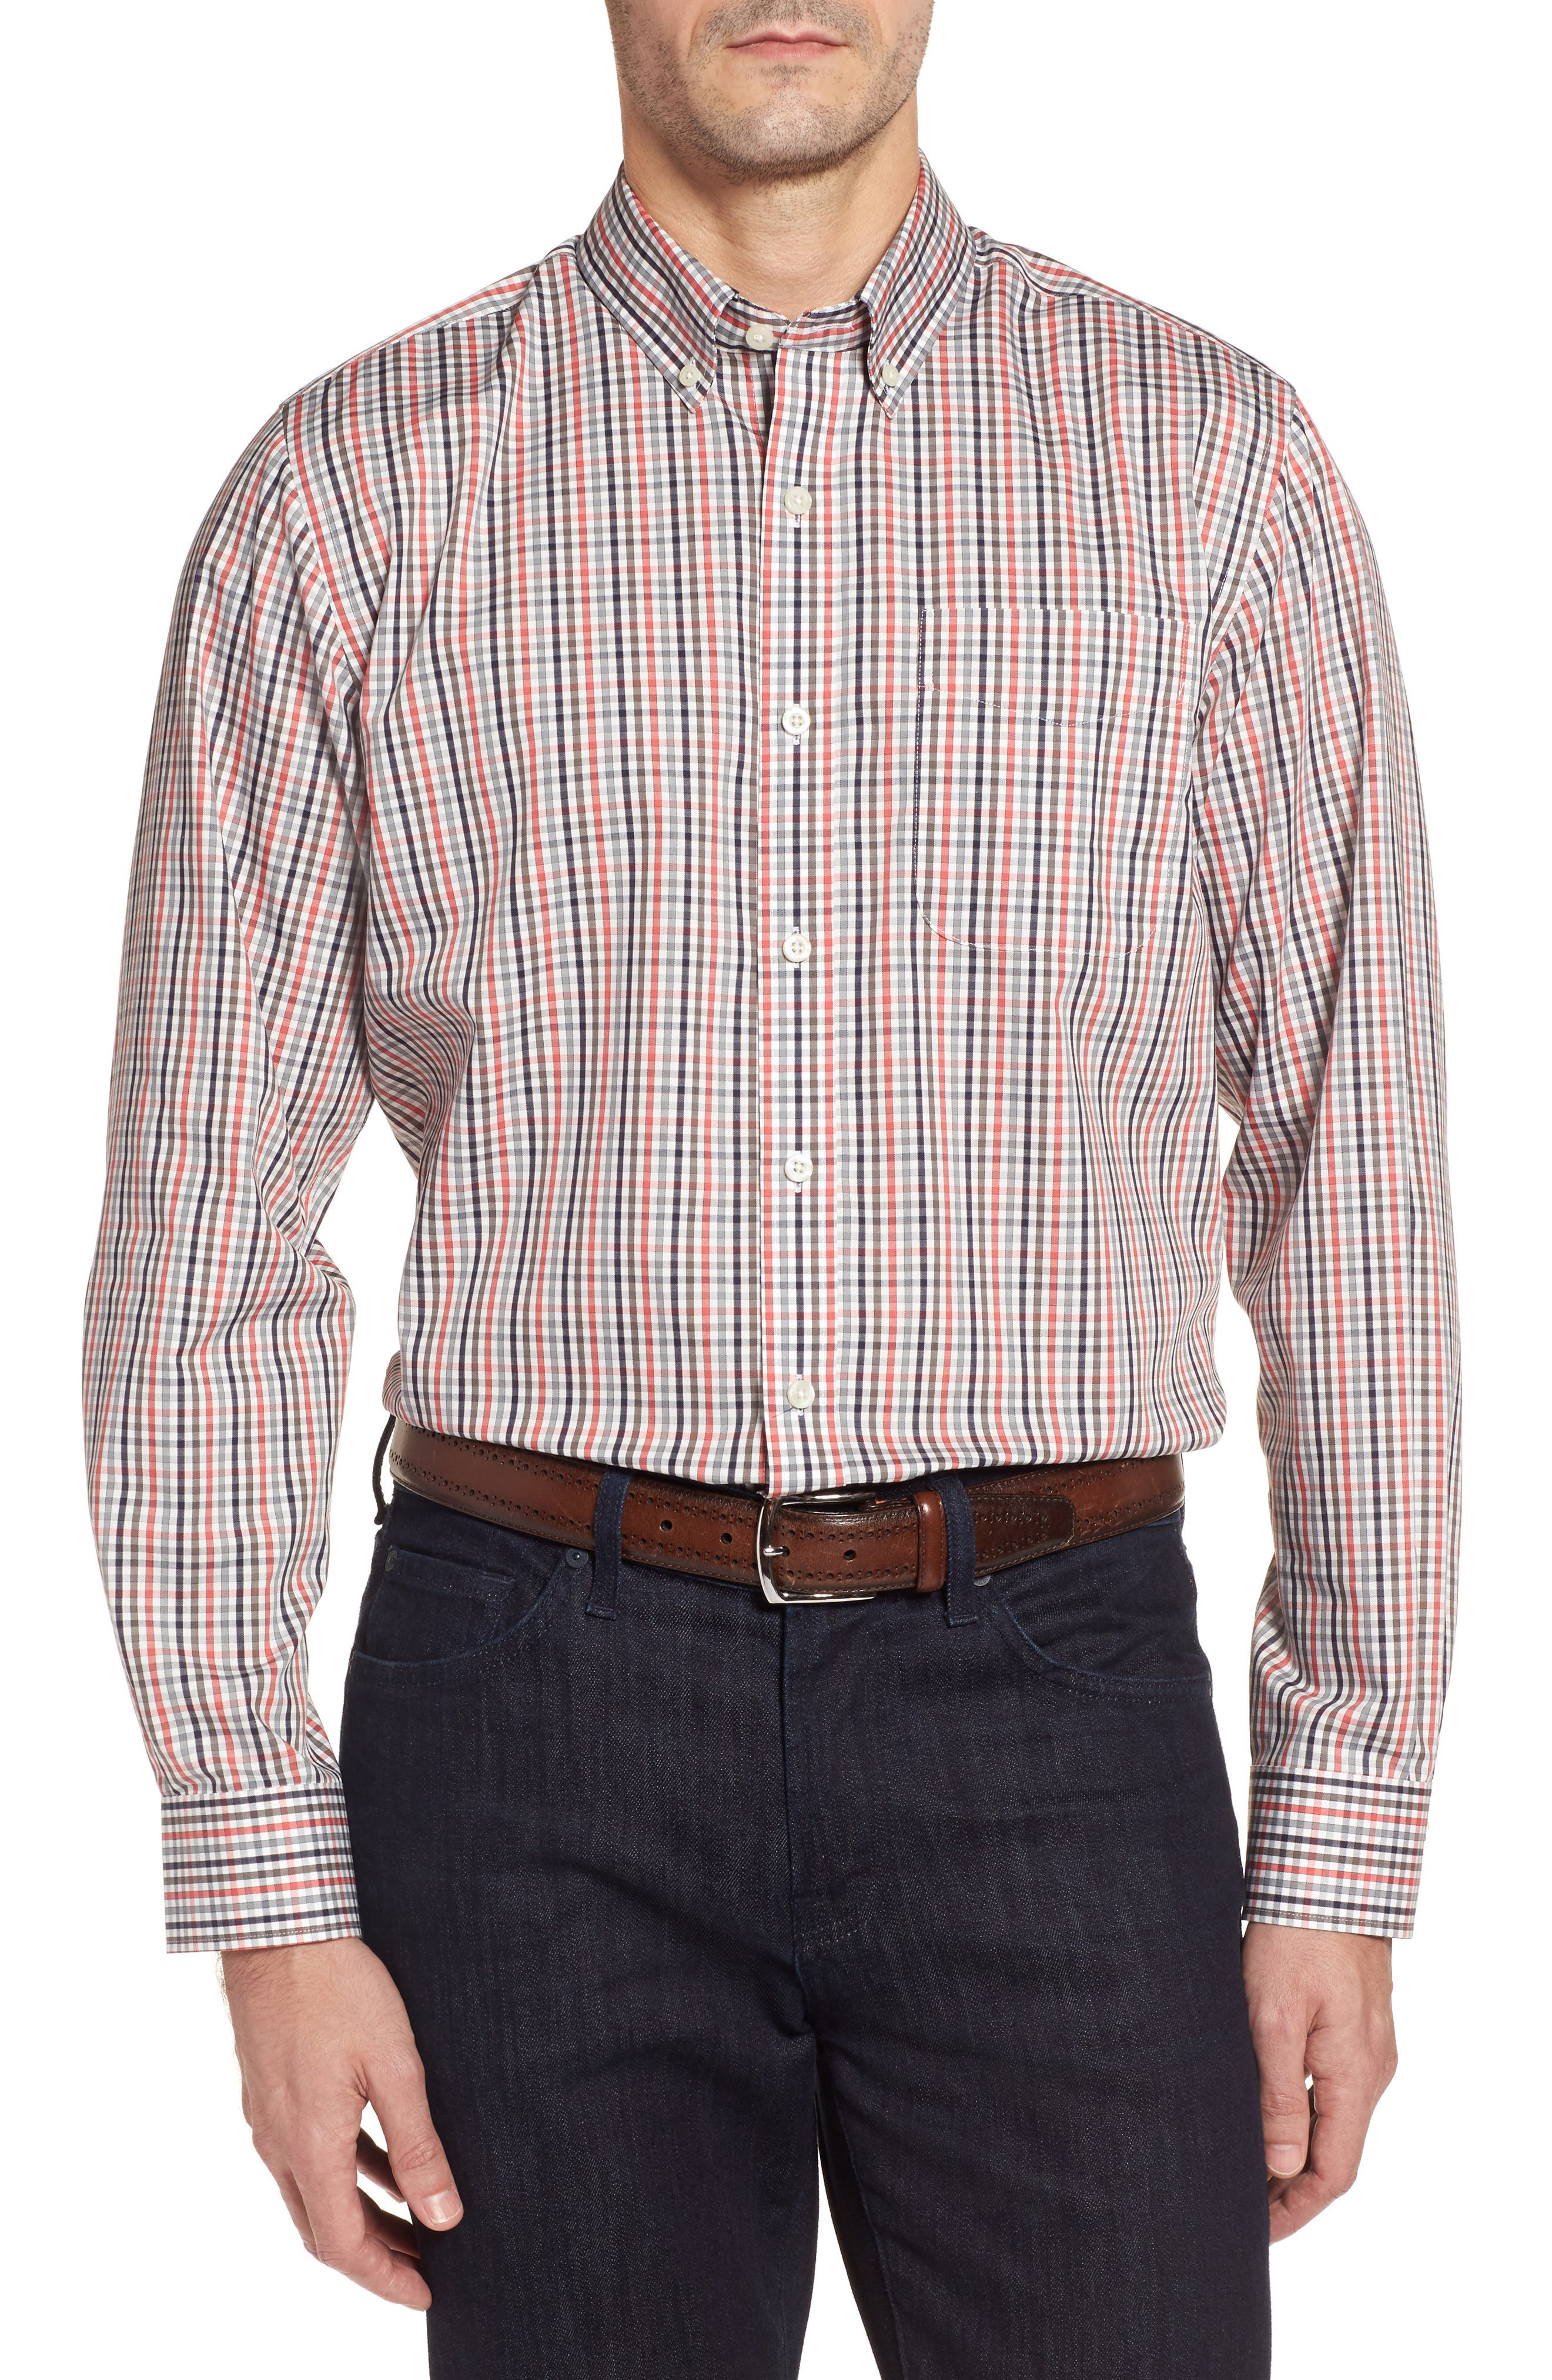 Cutter & Buck Baxter Epic Easy Care Classic Fit Plaid Sport Shirt